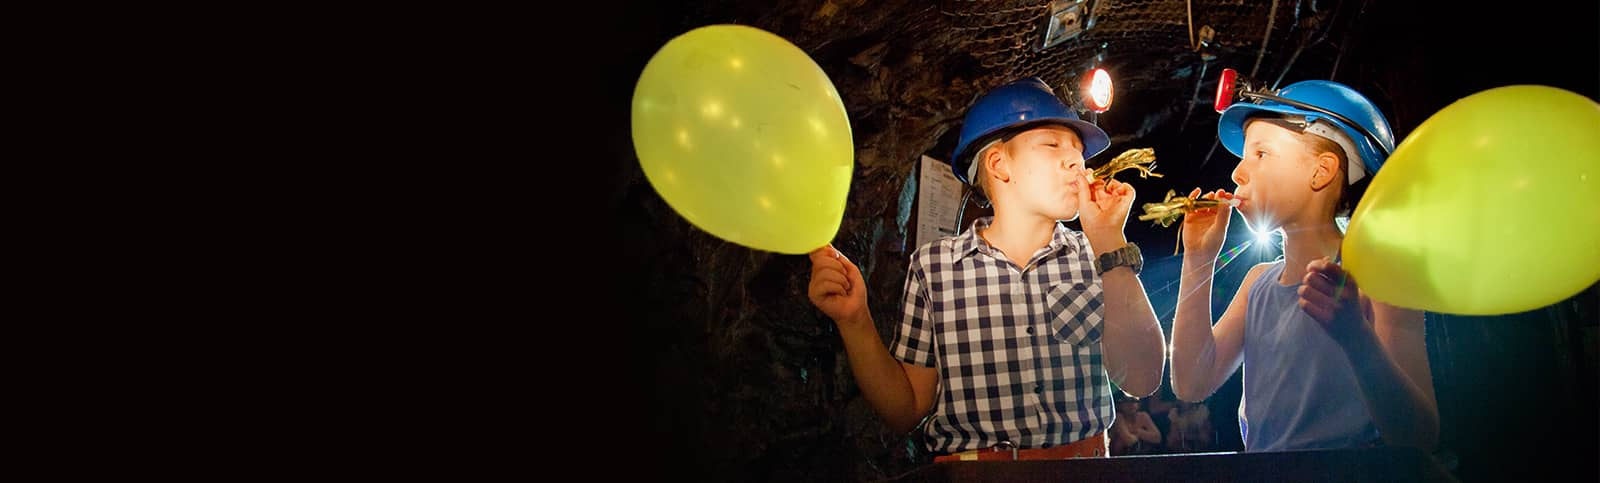 Kids wearing hard hats and holding balloons underground at a Birthday Party